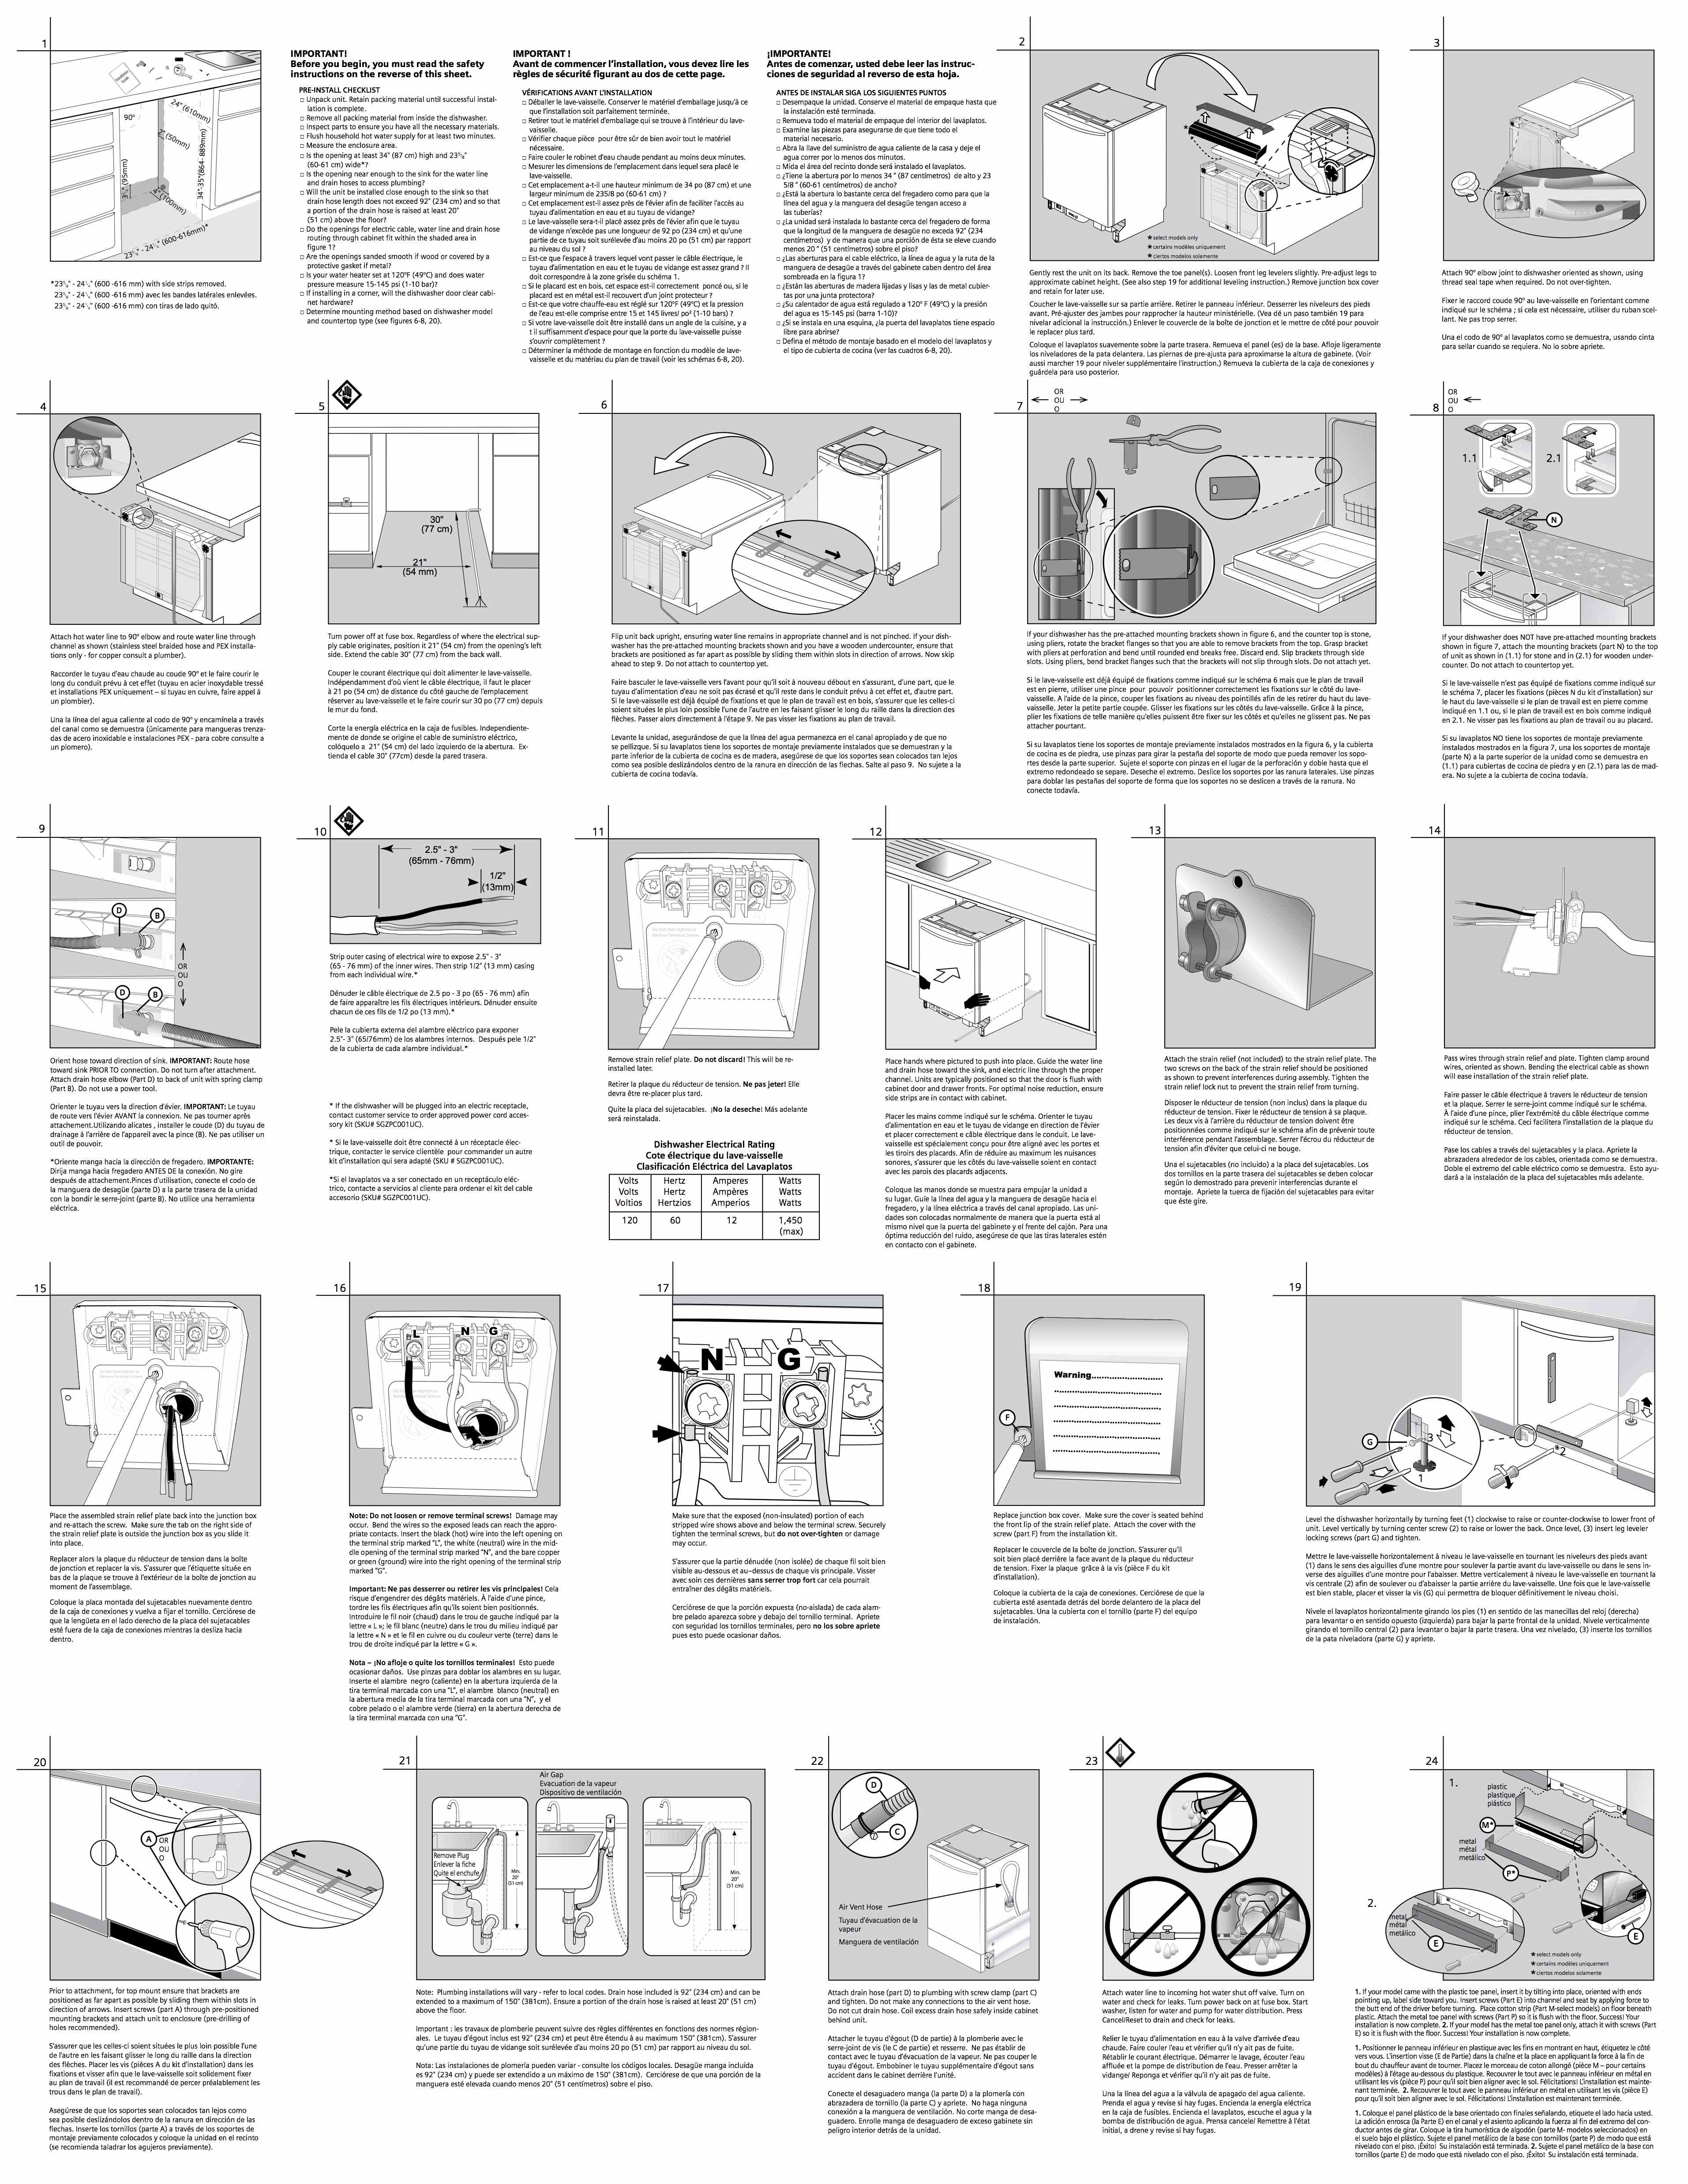 Bosch dishwasher installation manual